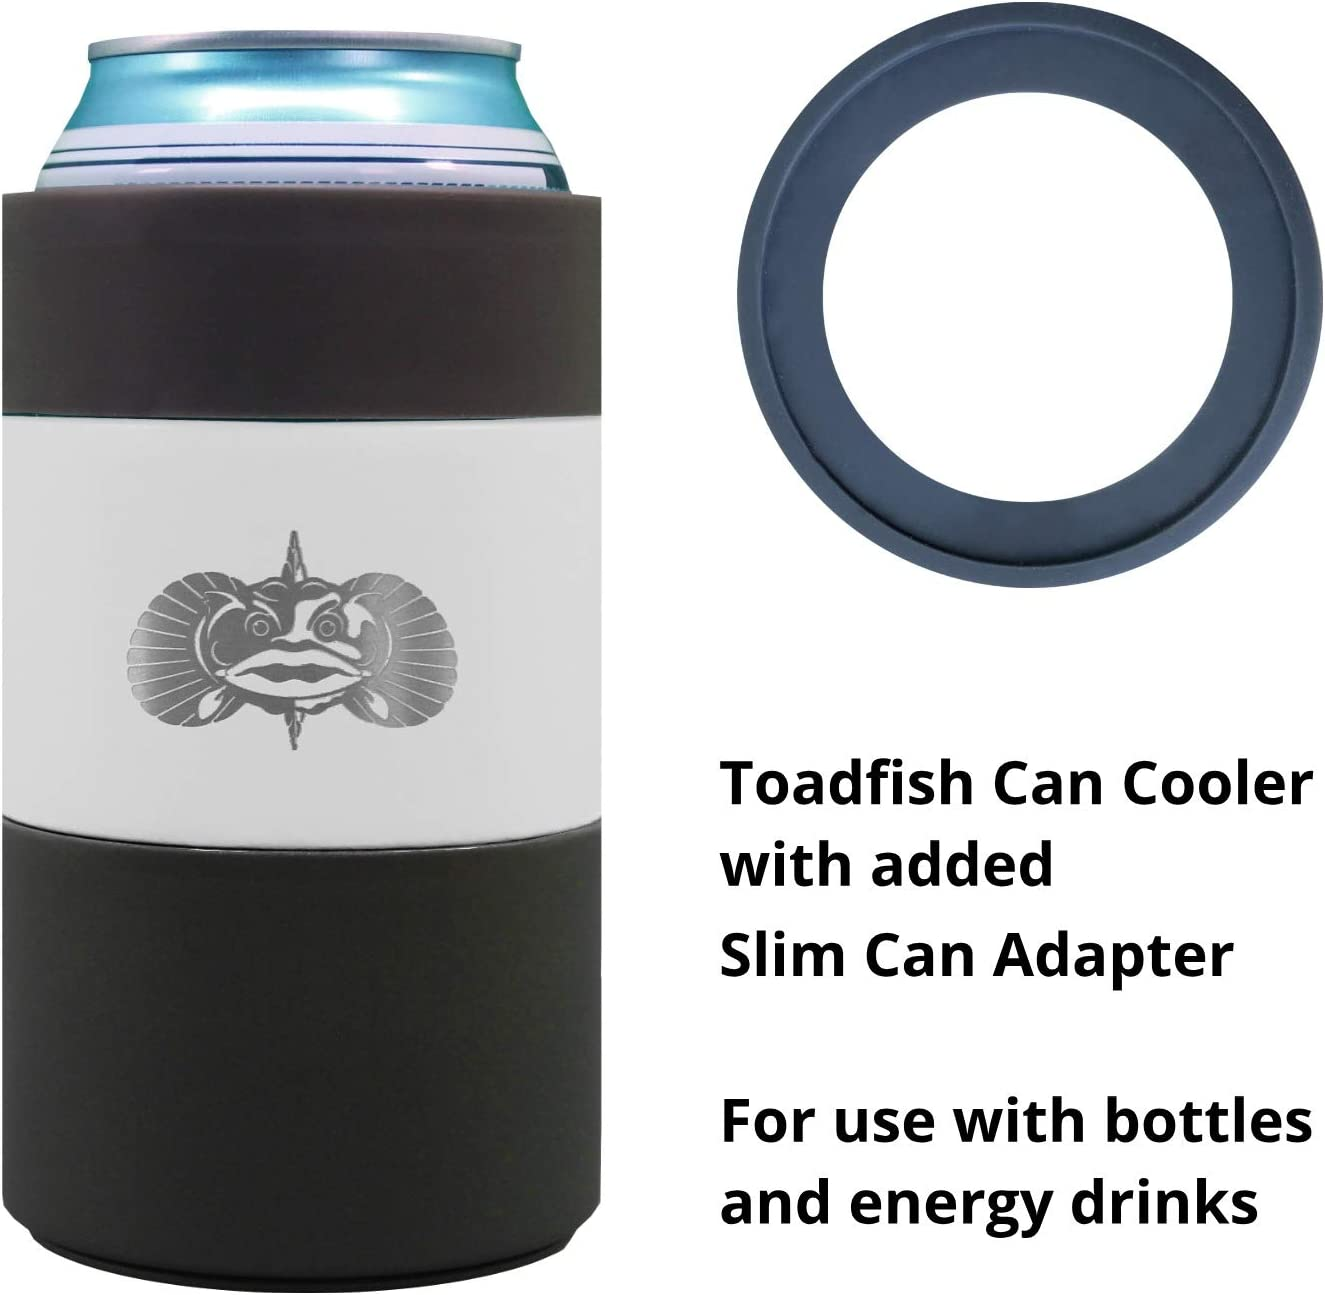 Toadfish Can Cooler - Non-Tipping Suction Cup Can Cooler With Slim Can Adapter - Double Wall Vacuum Insulation Insulated Can Cooler Designed to Stay Upright and Not Spill - Stainless Steel (White)